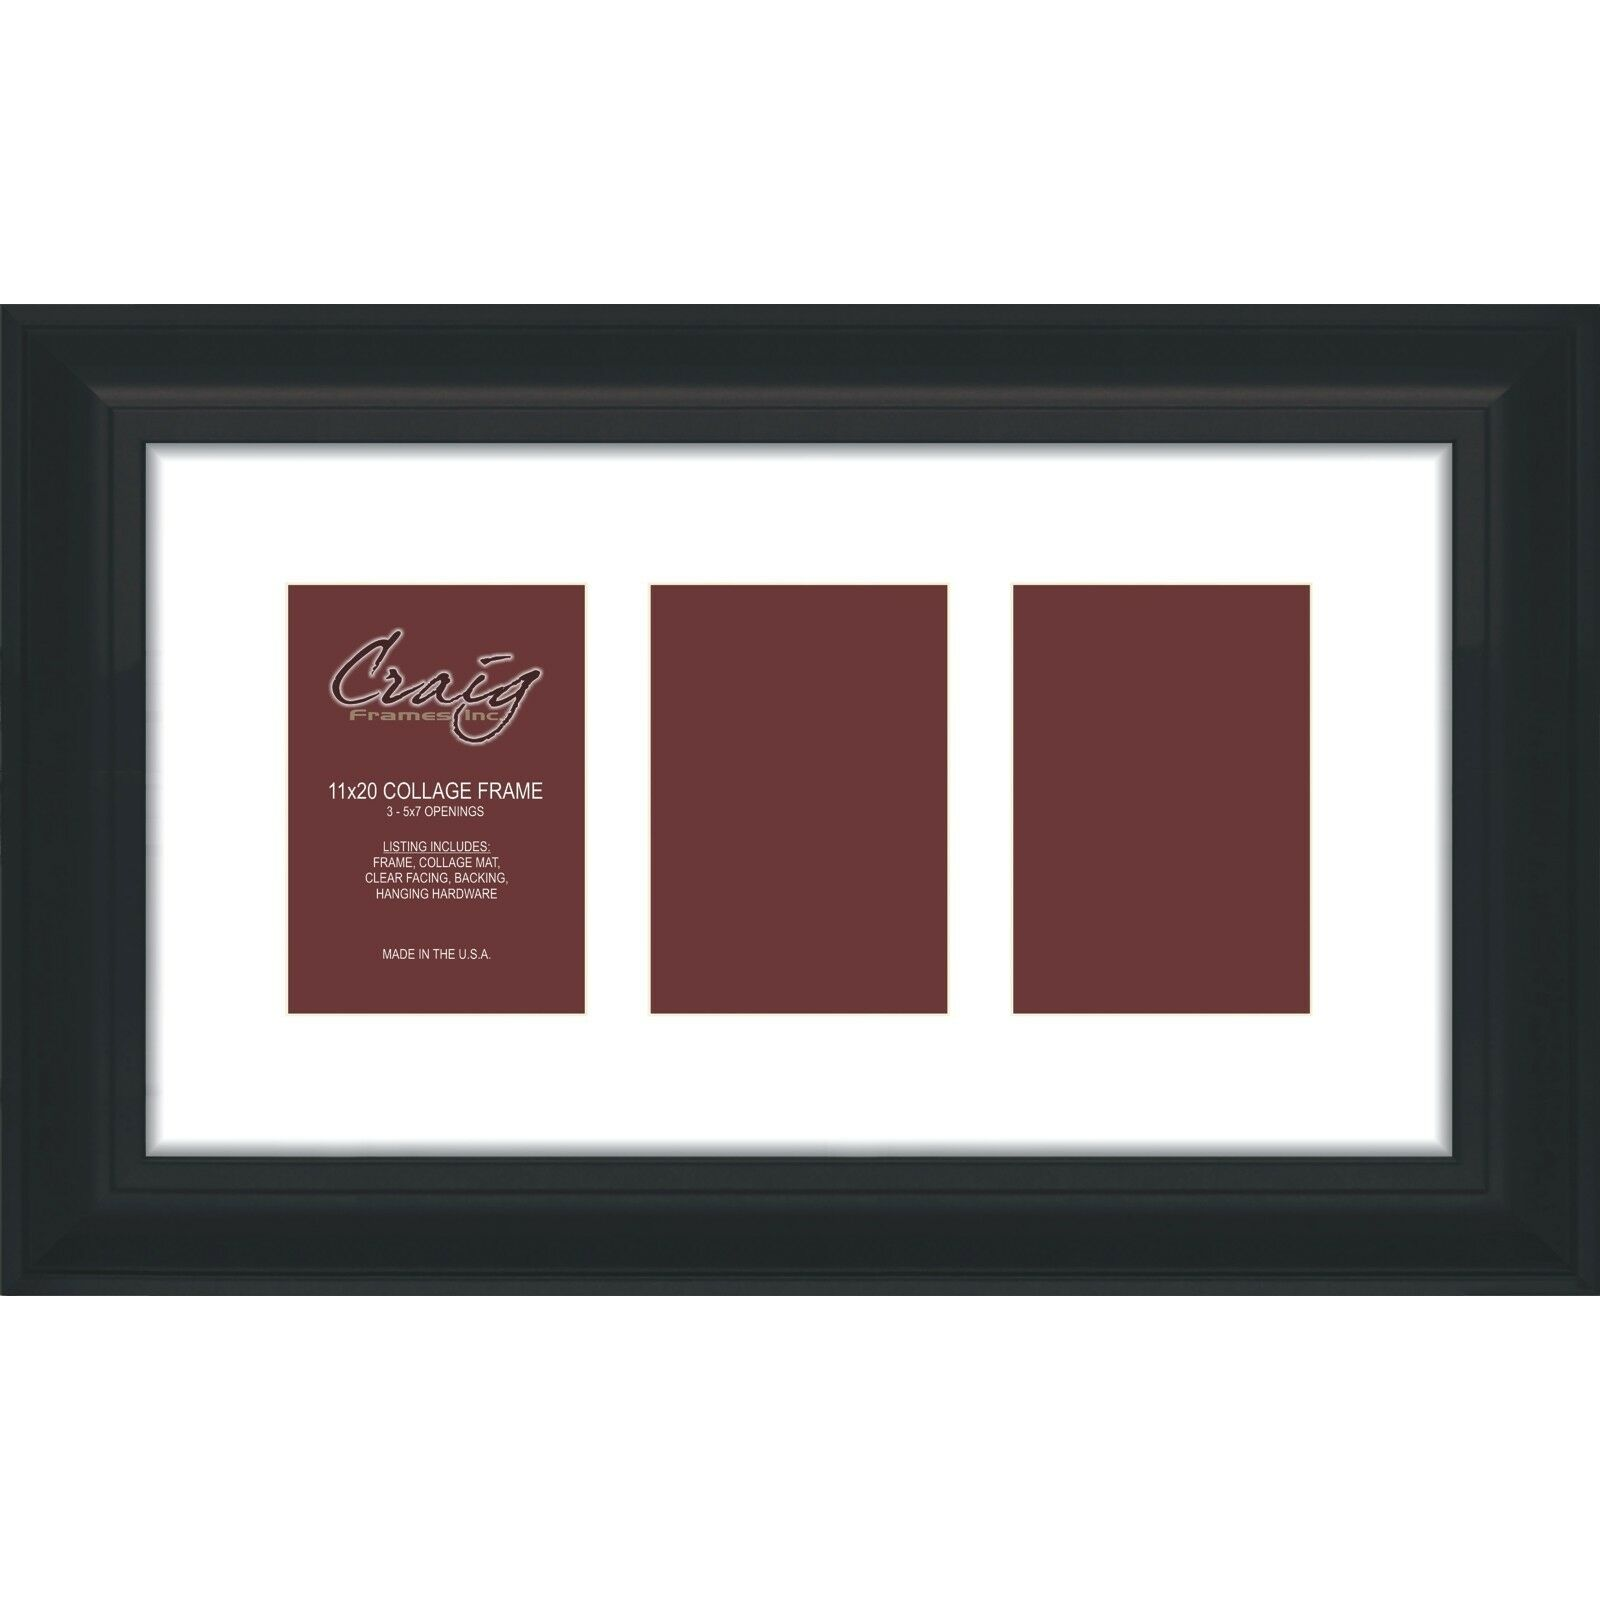 Craig Frames 11x20 Black Picture Frame With 3- 5x7 Openings White ...